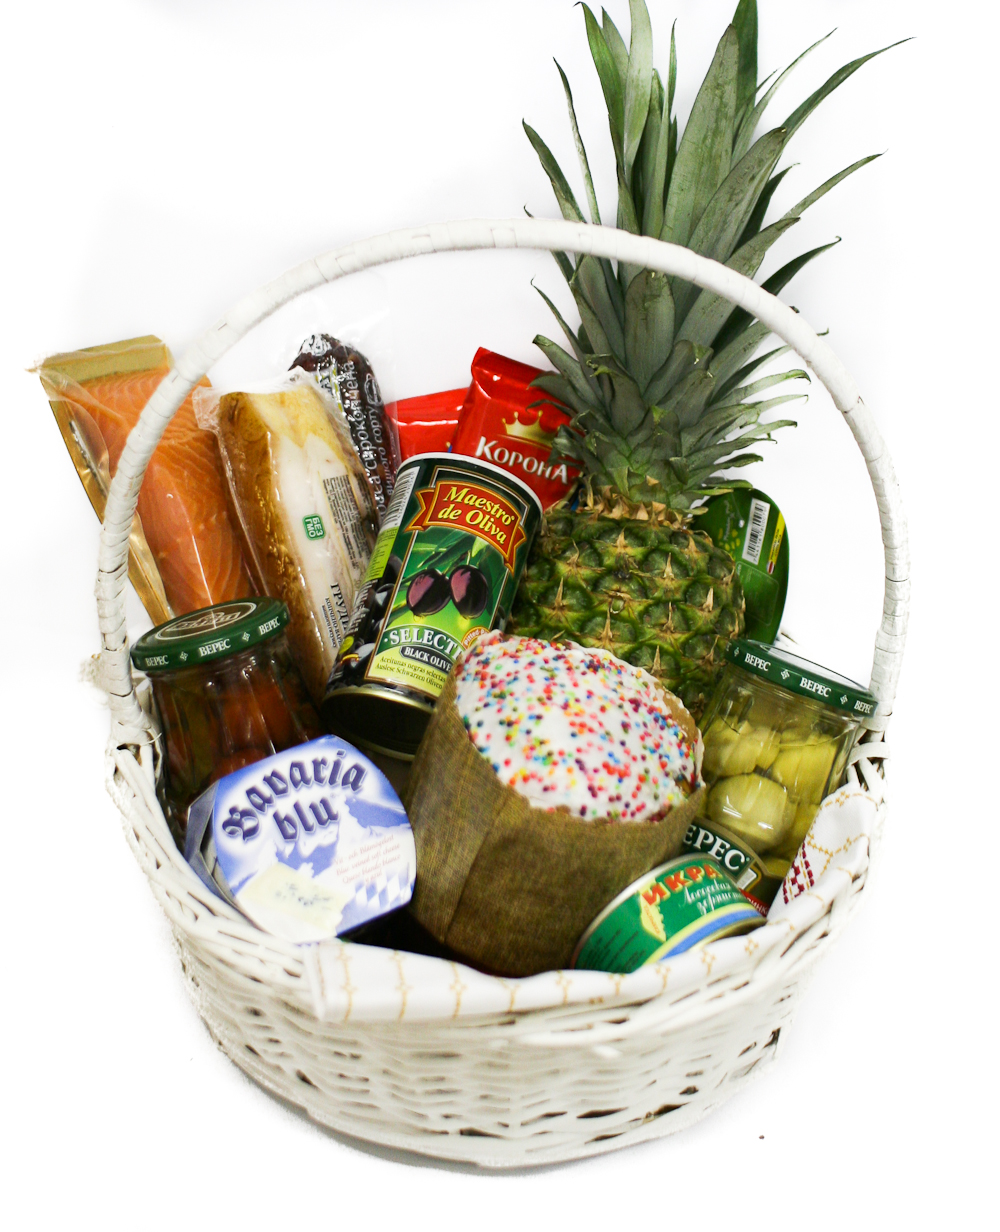 Easter basket ukrflower flower delivery kiev ukraine easter basket ukrflower flower delivery negle